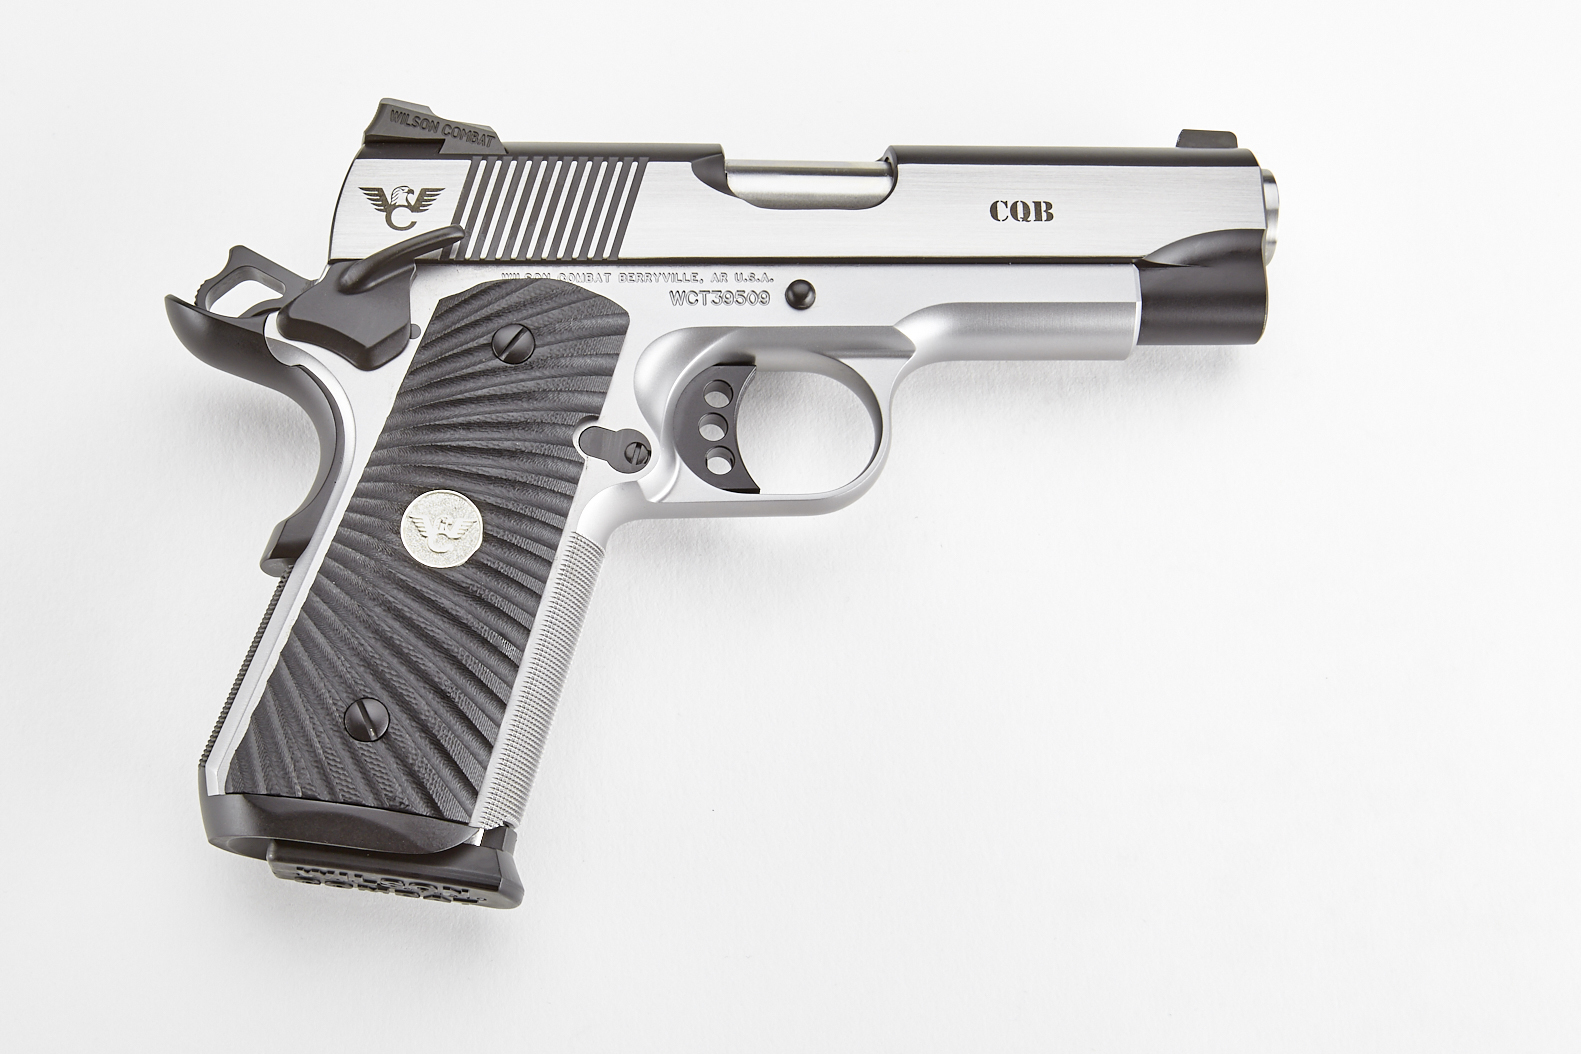 cqb compact 9mm stainless steel upgrade https